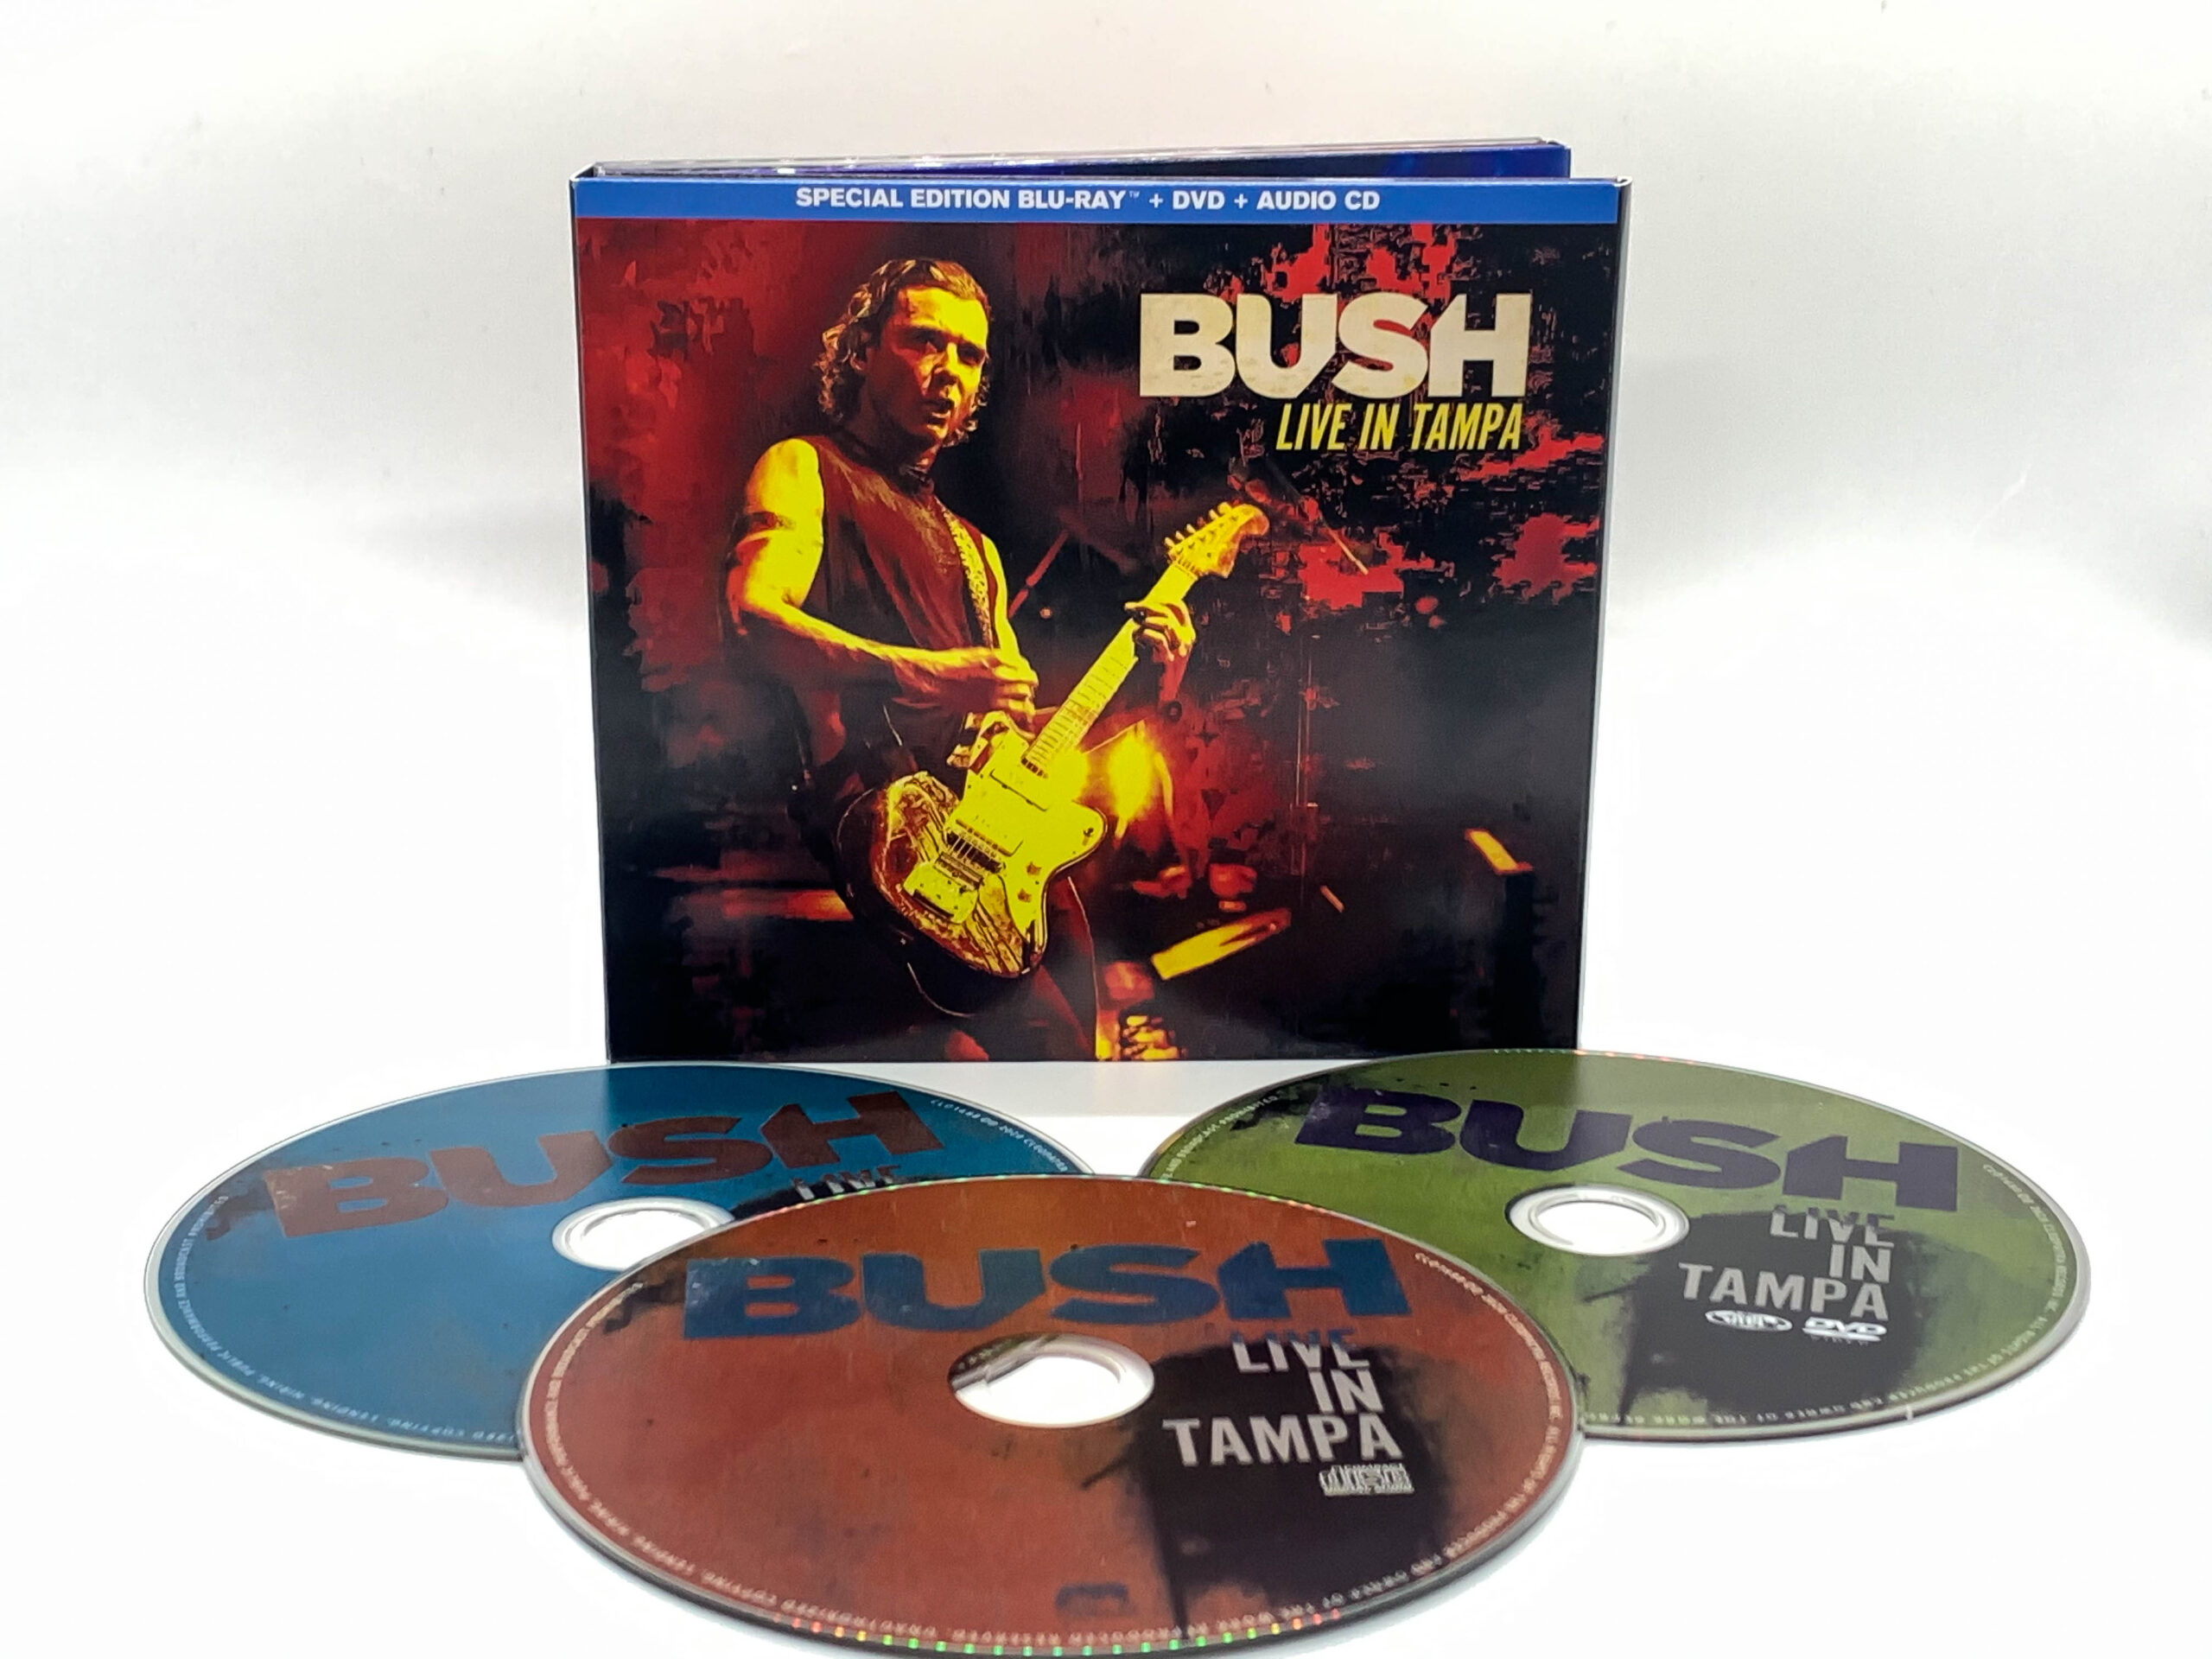 Bush: Live in Tampa packaging